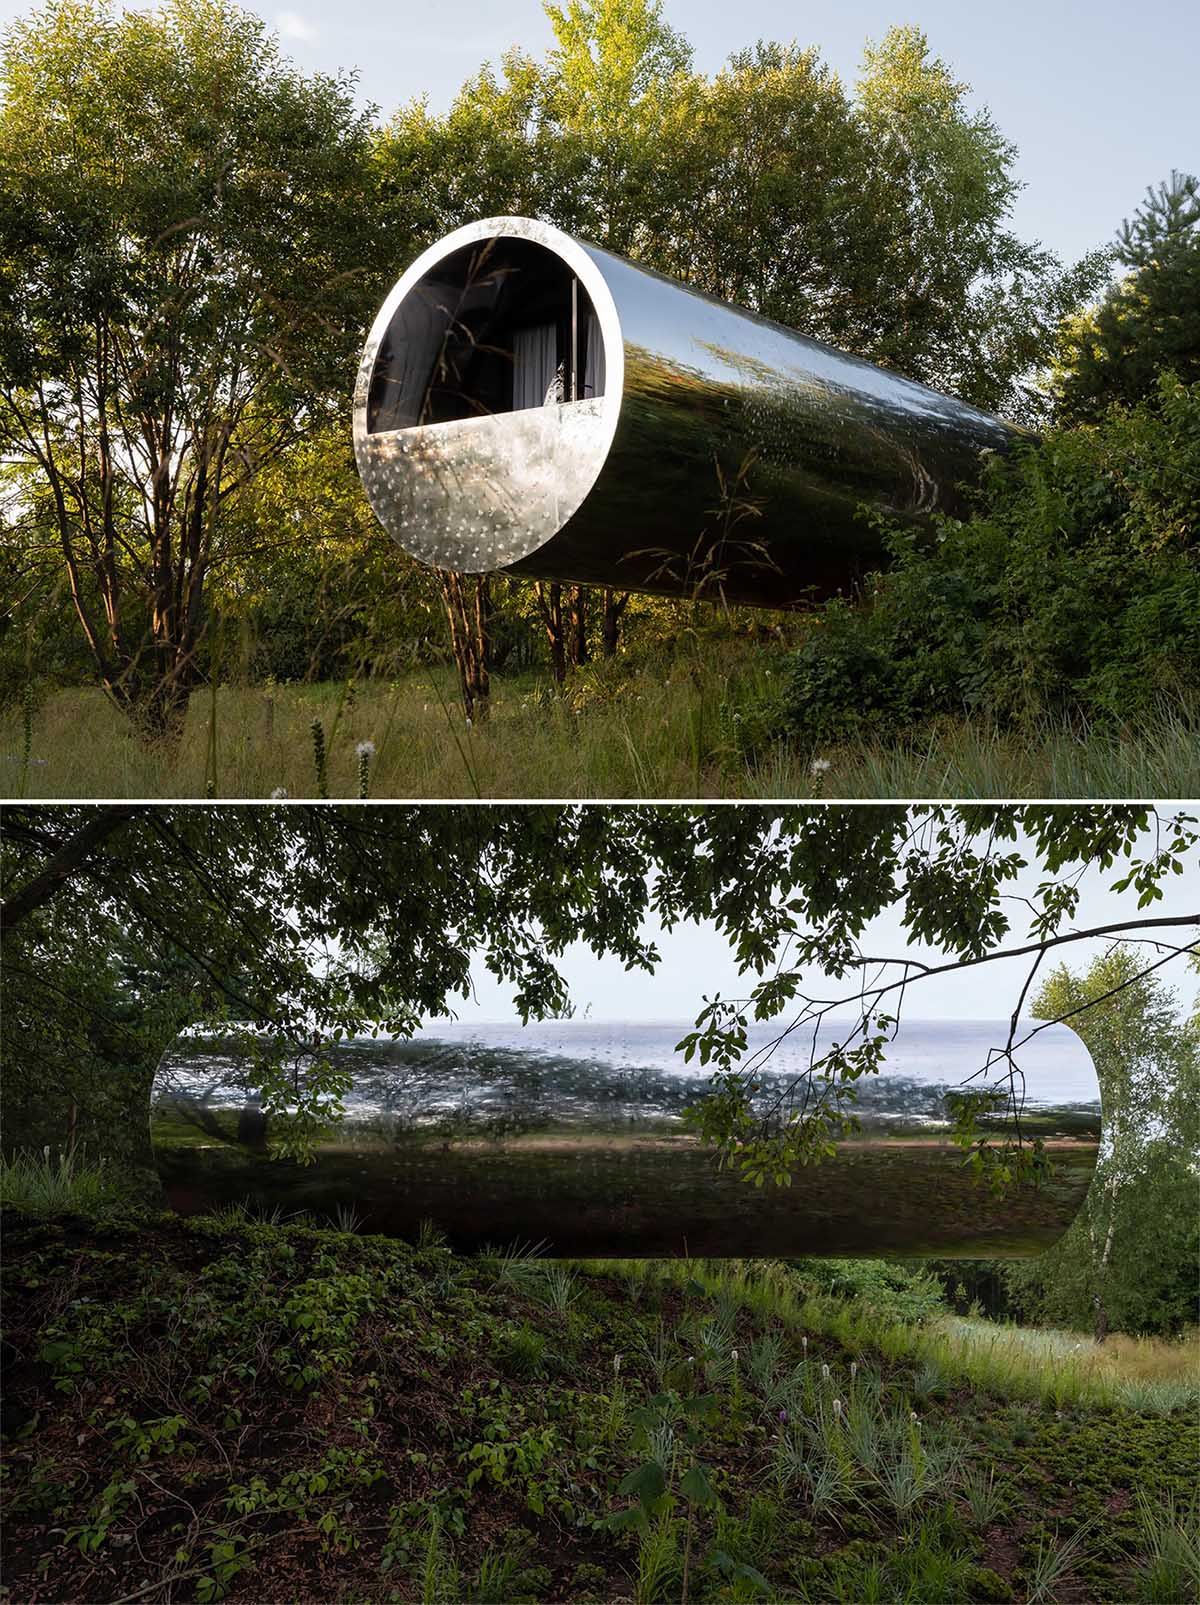 A unique tube-inspired cabin with a stainless steel exterior and a wood-lined interior.